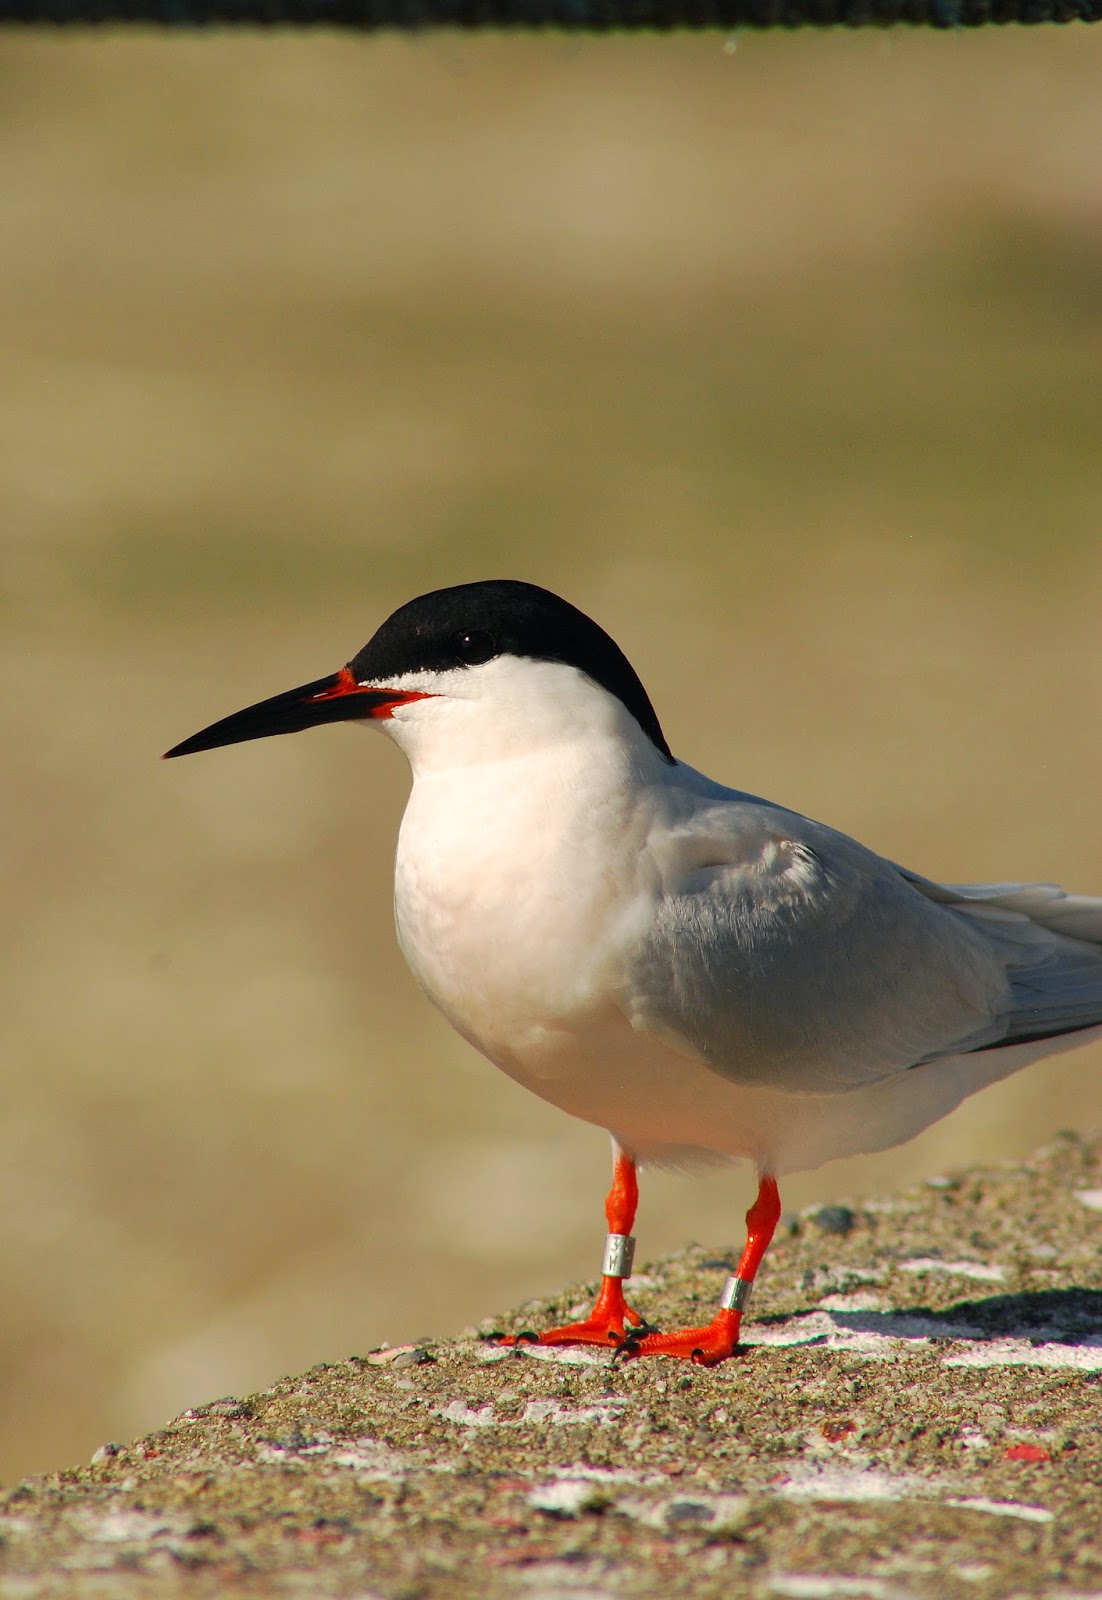 a look at the endangerment of the roseate tern species The roseate tern is a mid-sized tern that can reach a length of 157 inches (40 centimeters) with a wingspan of 236 inches (60 centimeters) (us fish & wildlife service 1999) this species has a black cap, gray upperparts, white underparts, and a white forked tail.